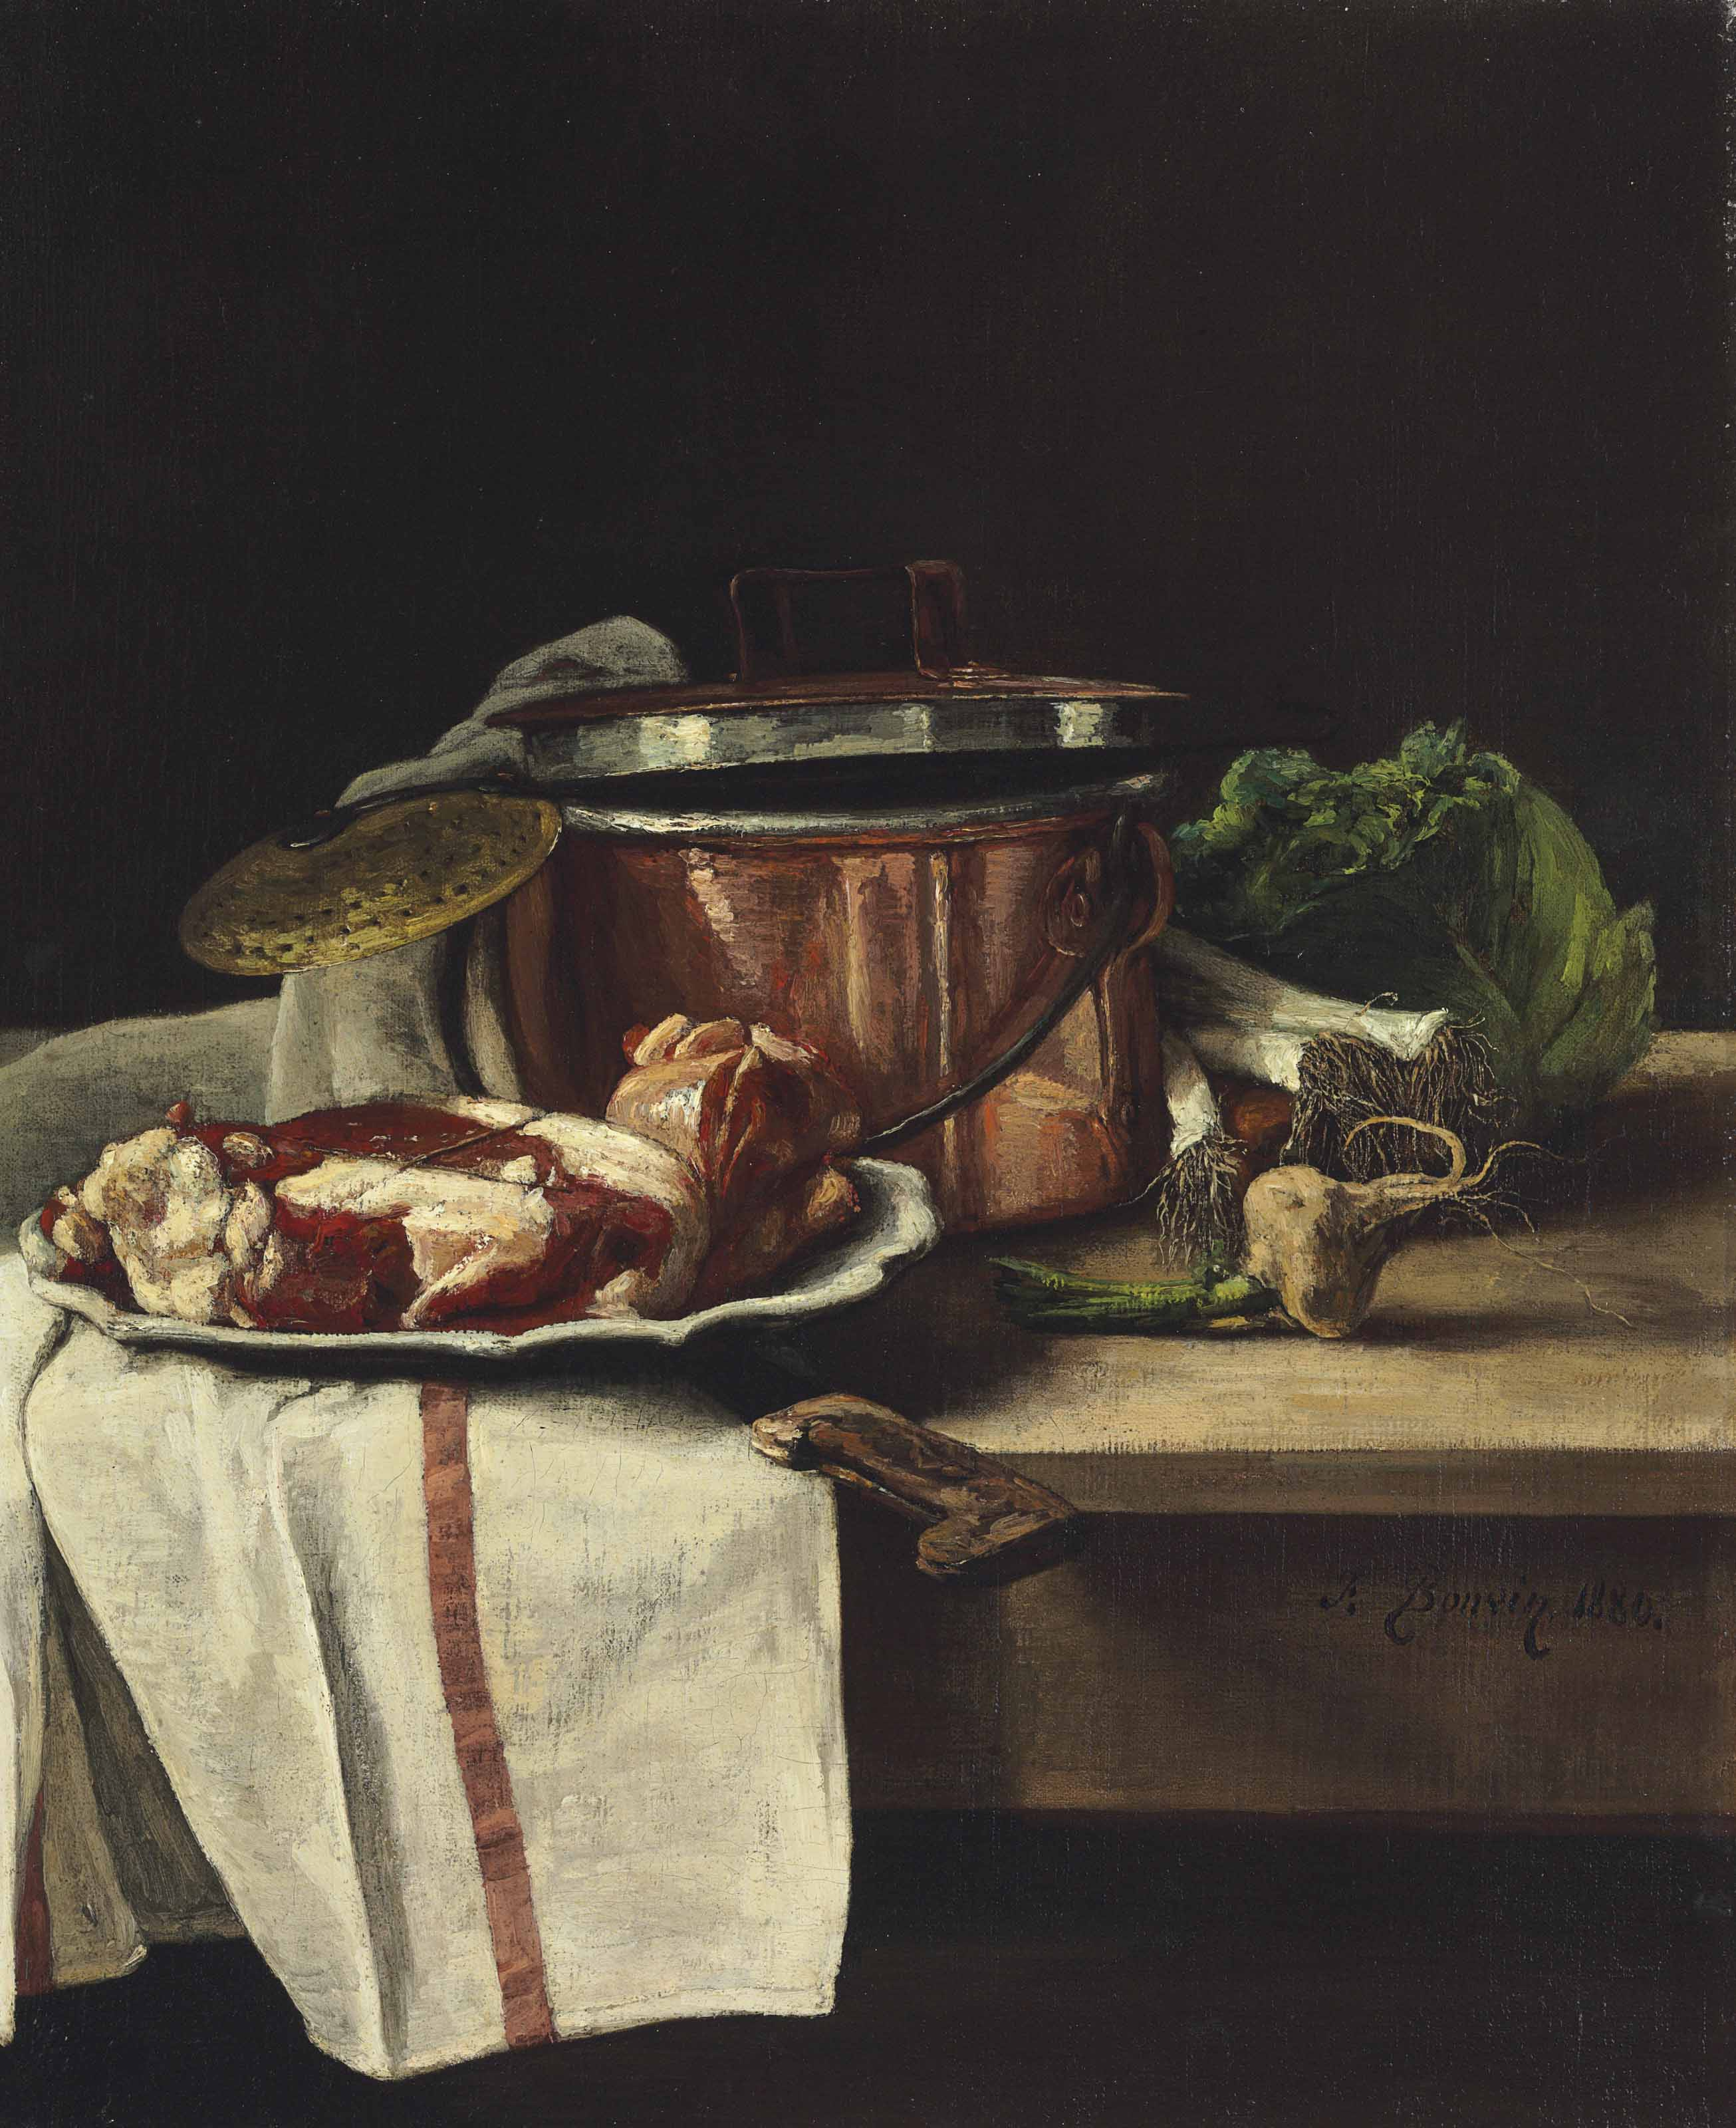 Still Life with Cabbage, Leeks, Garlic and Beef by a Copper Pot